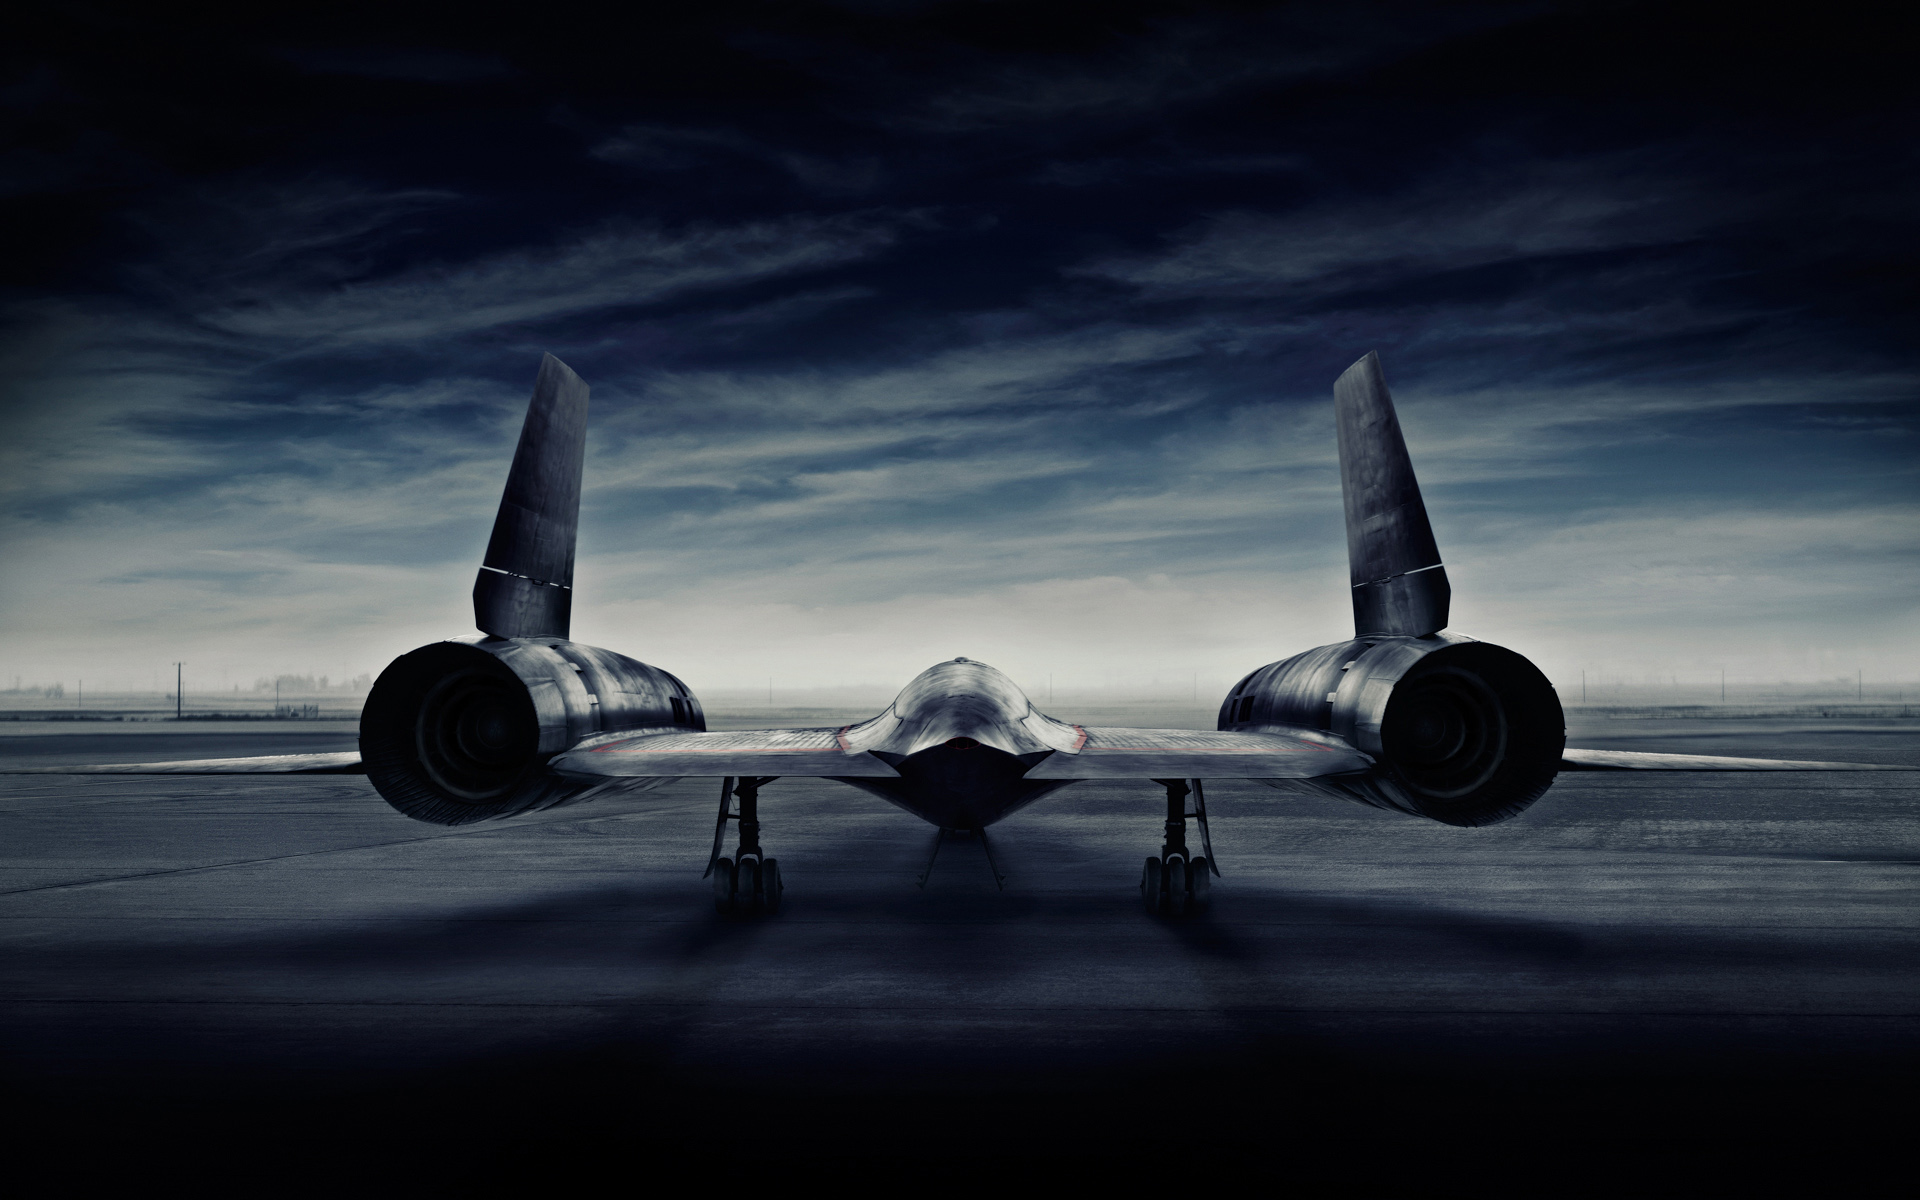 SR71 Blackbird photographed by Advertising Photographer